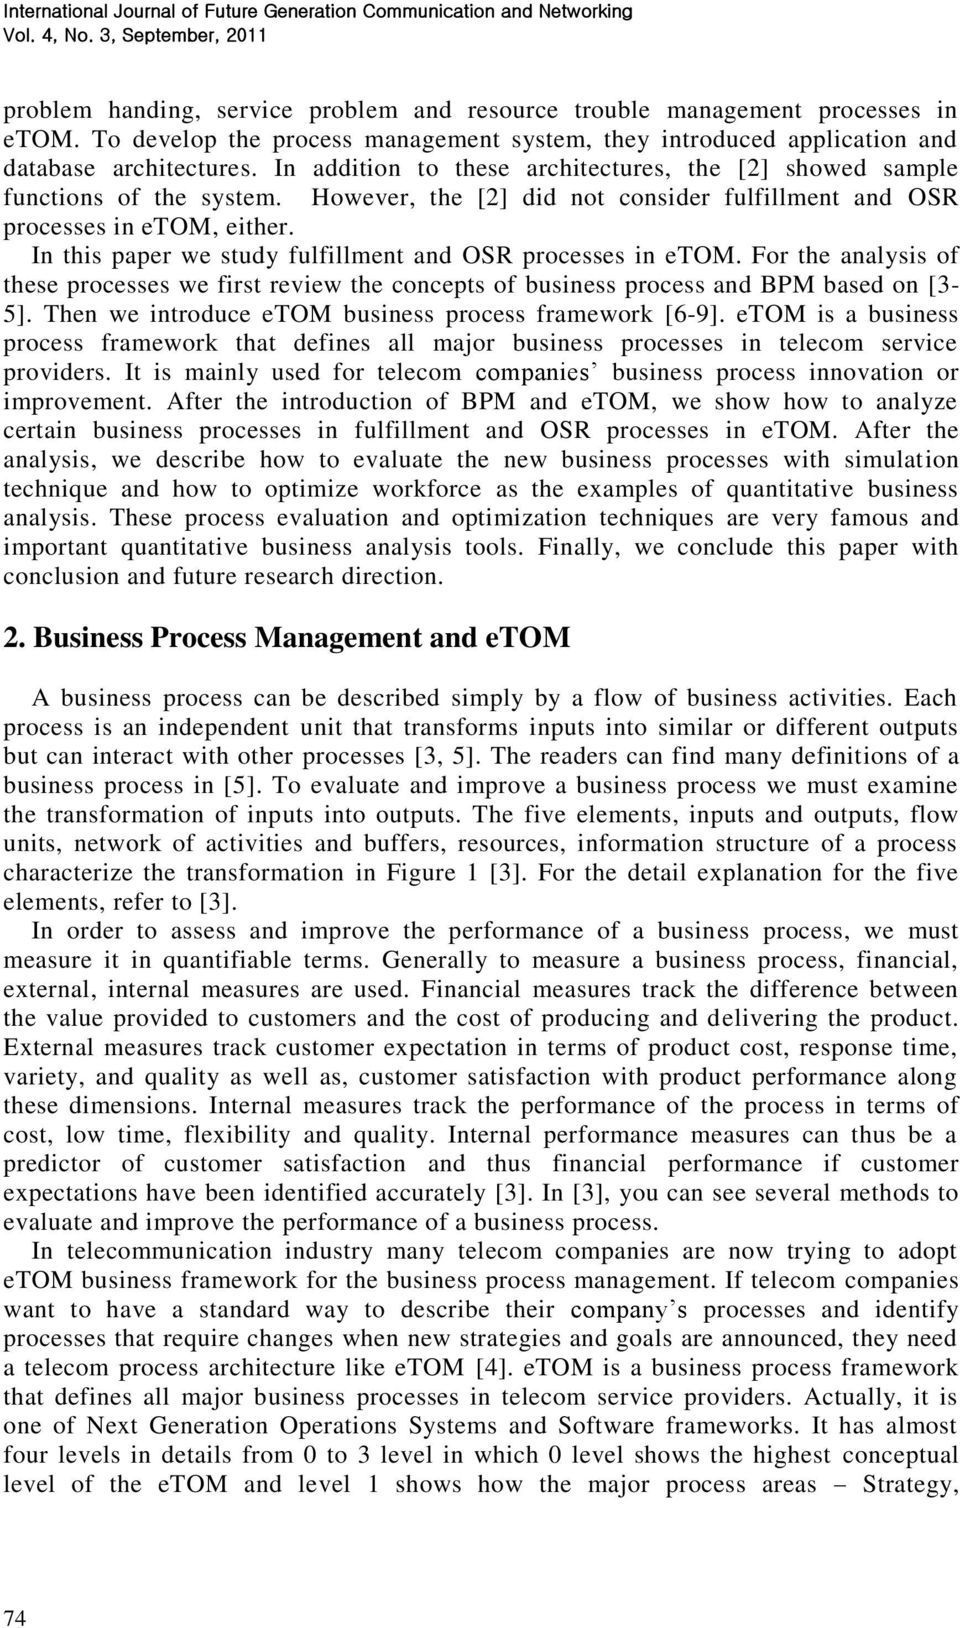 In this paper we study fulfillment and OSR processes in etom. For the analysis of these processes we first review the concepts of business process and BPM based on [3-5].